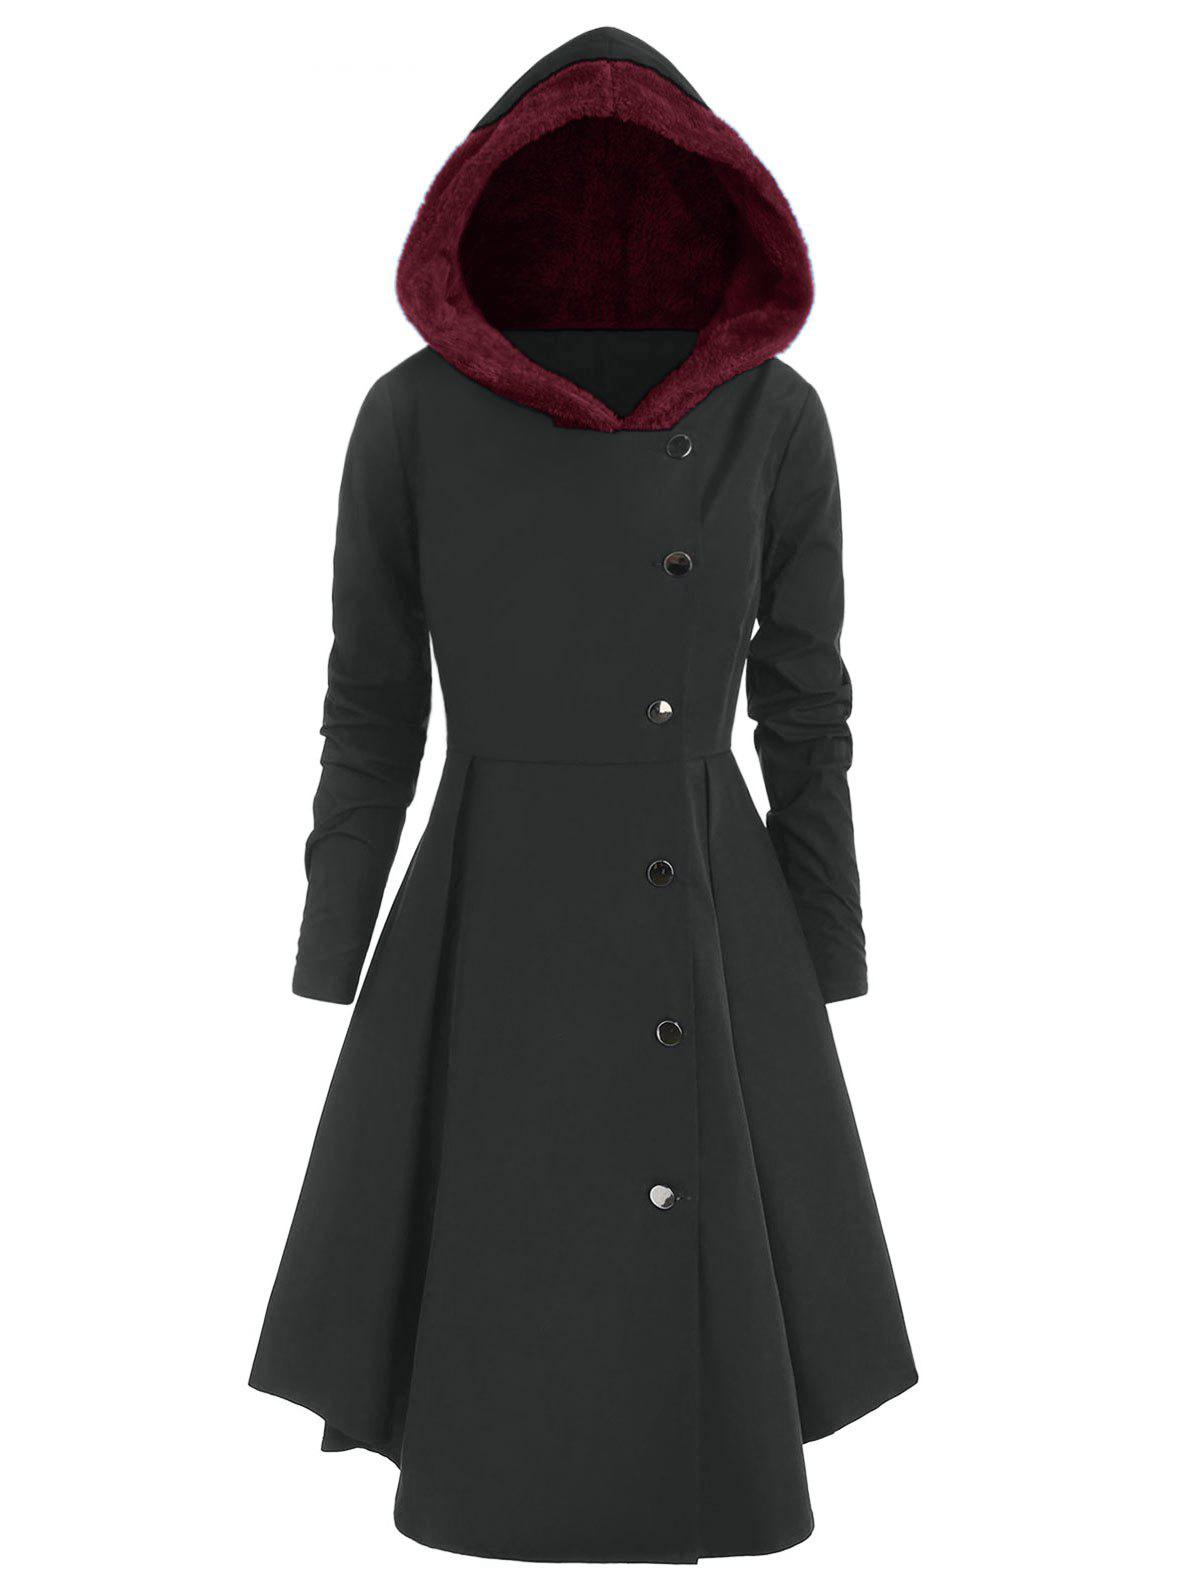 Plus Size Asymmetric Contrast Hooded Skirted Coat - CARBON GRAY 5X